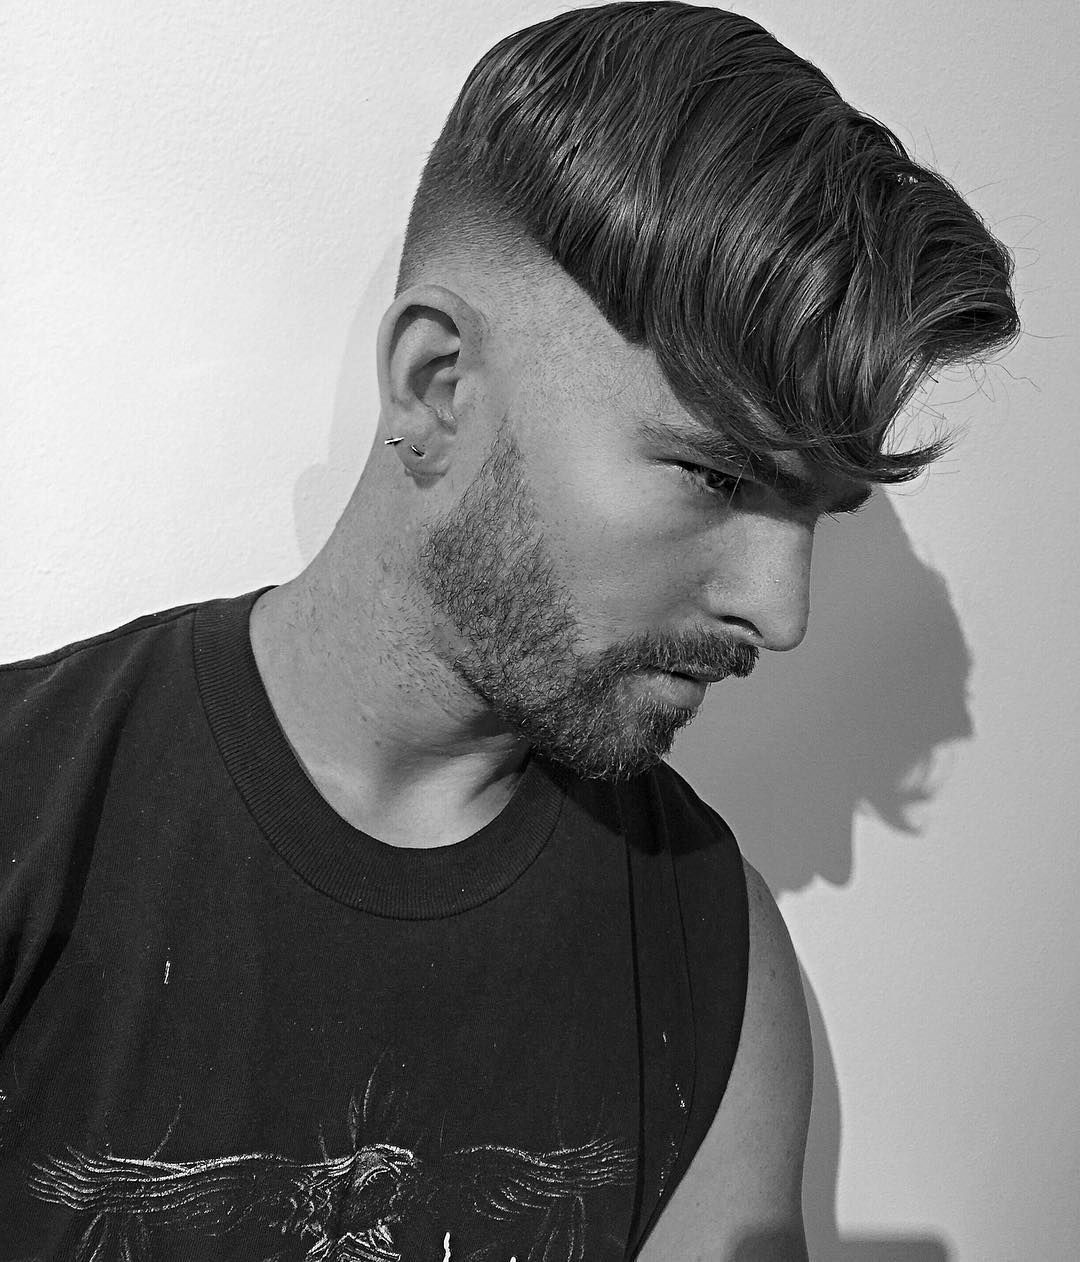 21 new undercut hairstyles for men | undercut hairstyle, undercut